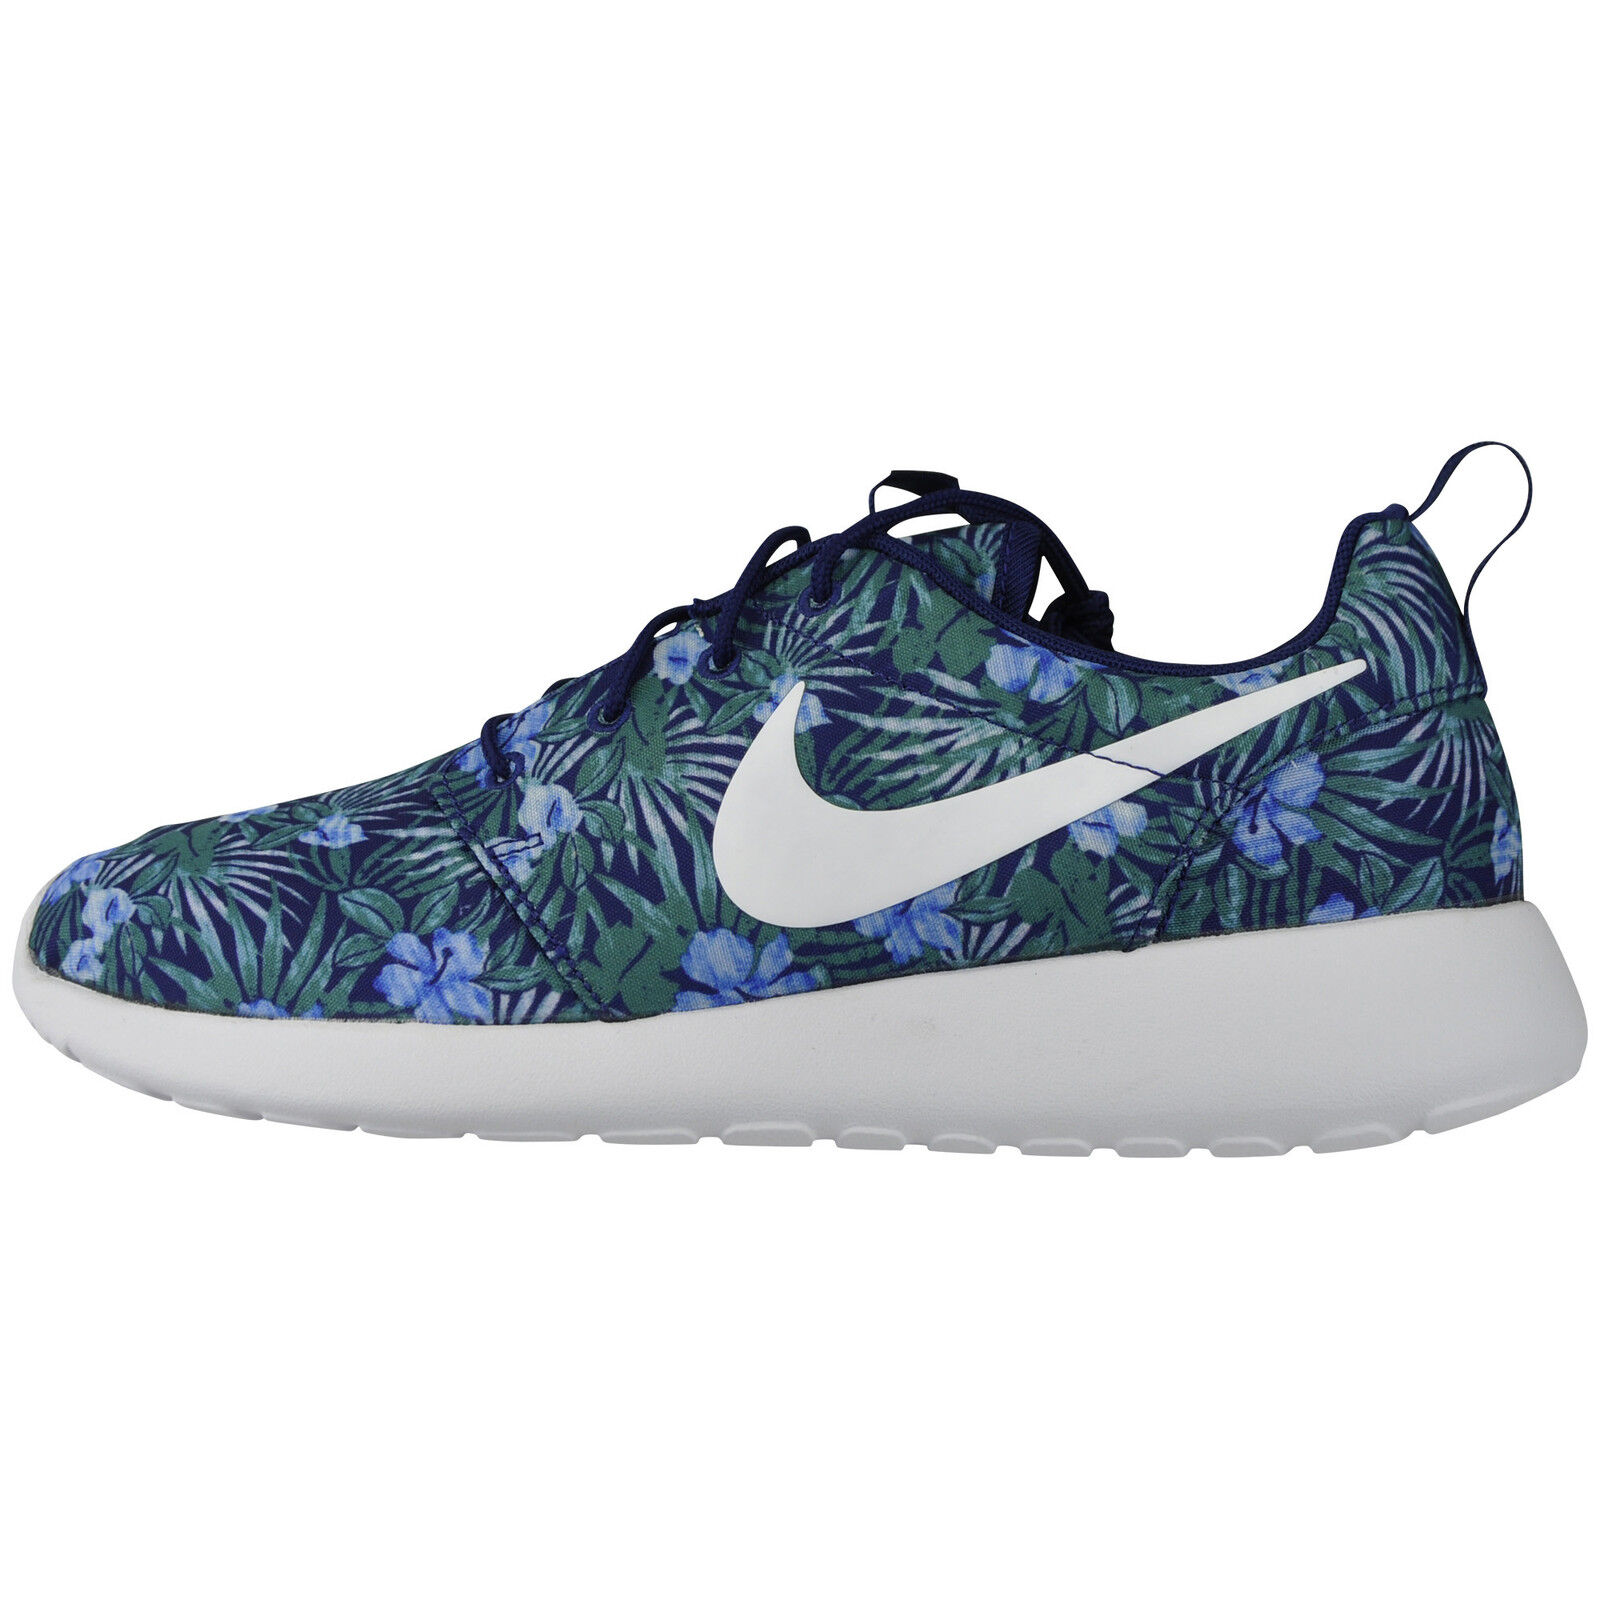 Nike roshe one running Print Prem 833620410 zapatillas running one cortos jogging 29a7e7